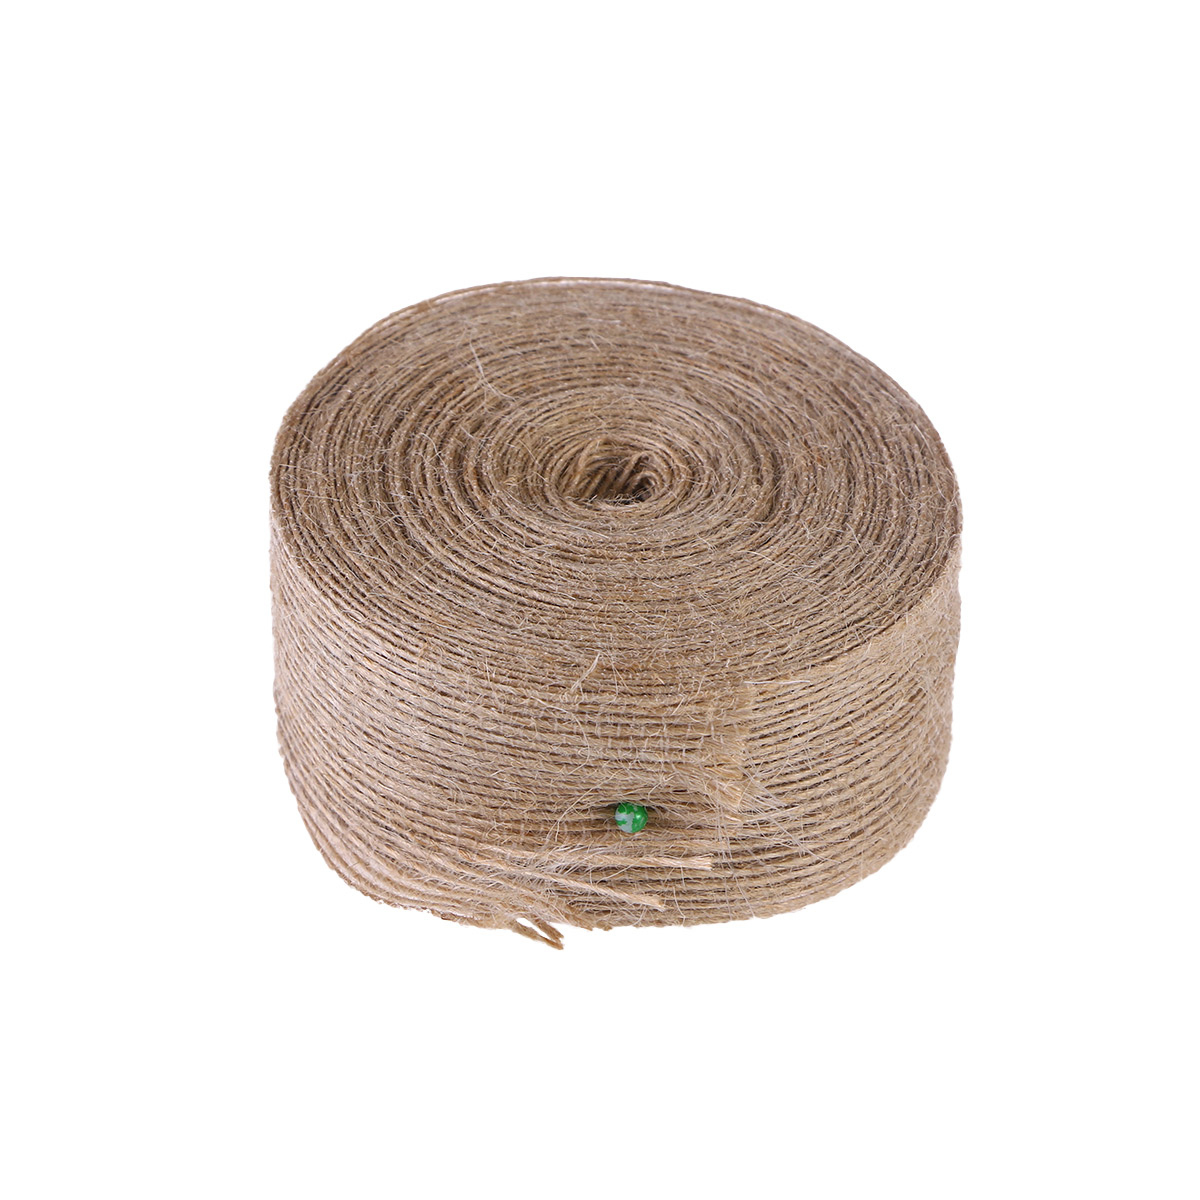 Rope Jute Ribbon Twine Home Belt Bow DIY Crafts Webbing Role Party Decorations